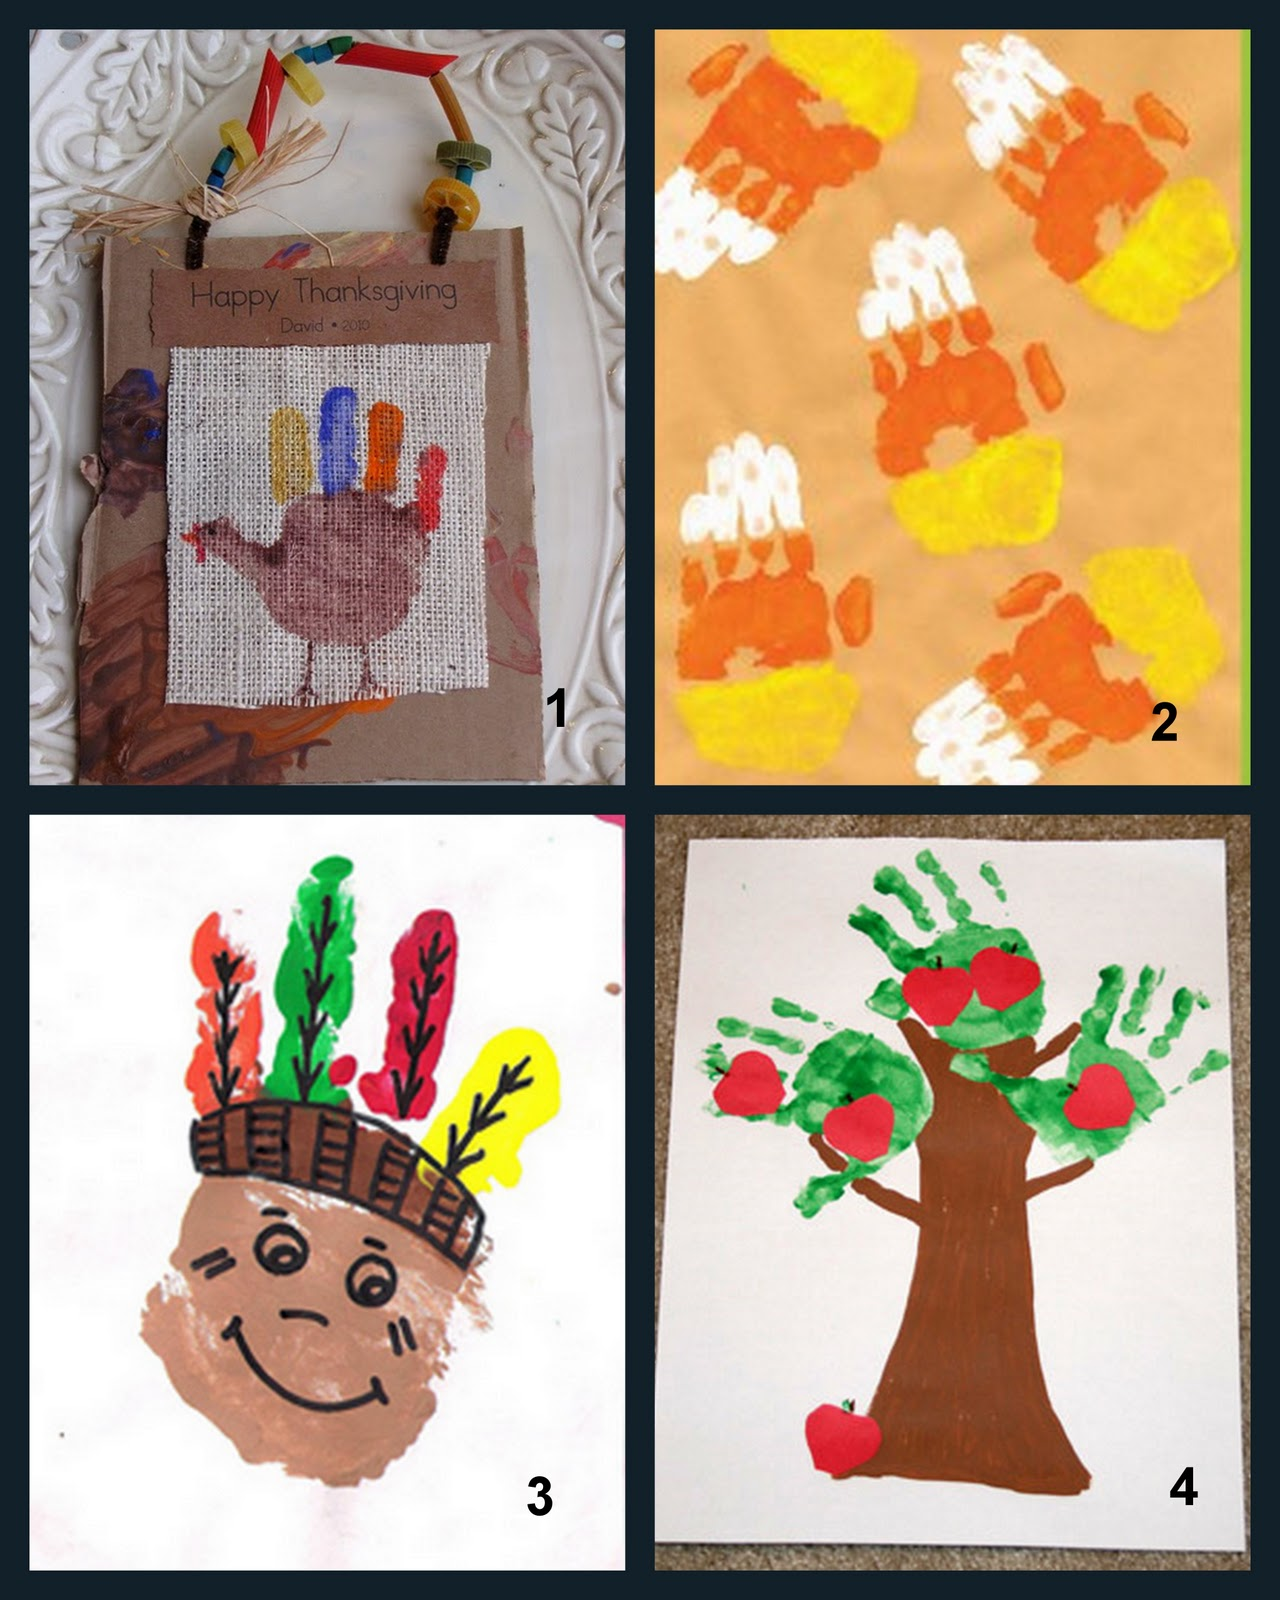 Inside: Make this fun fall handprint tree craft for kids this autumn! If there's one thing that comes to mind with the fall season, it's leaves changing color from green to vibrant reds, oranges and yellows.